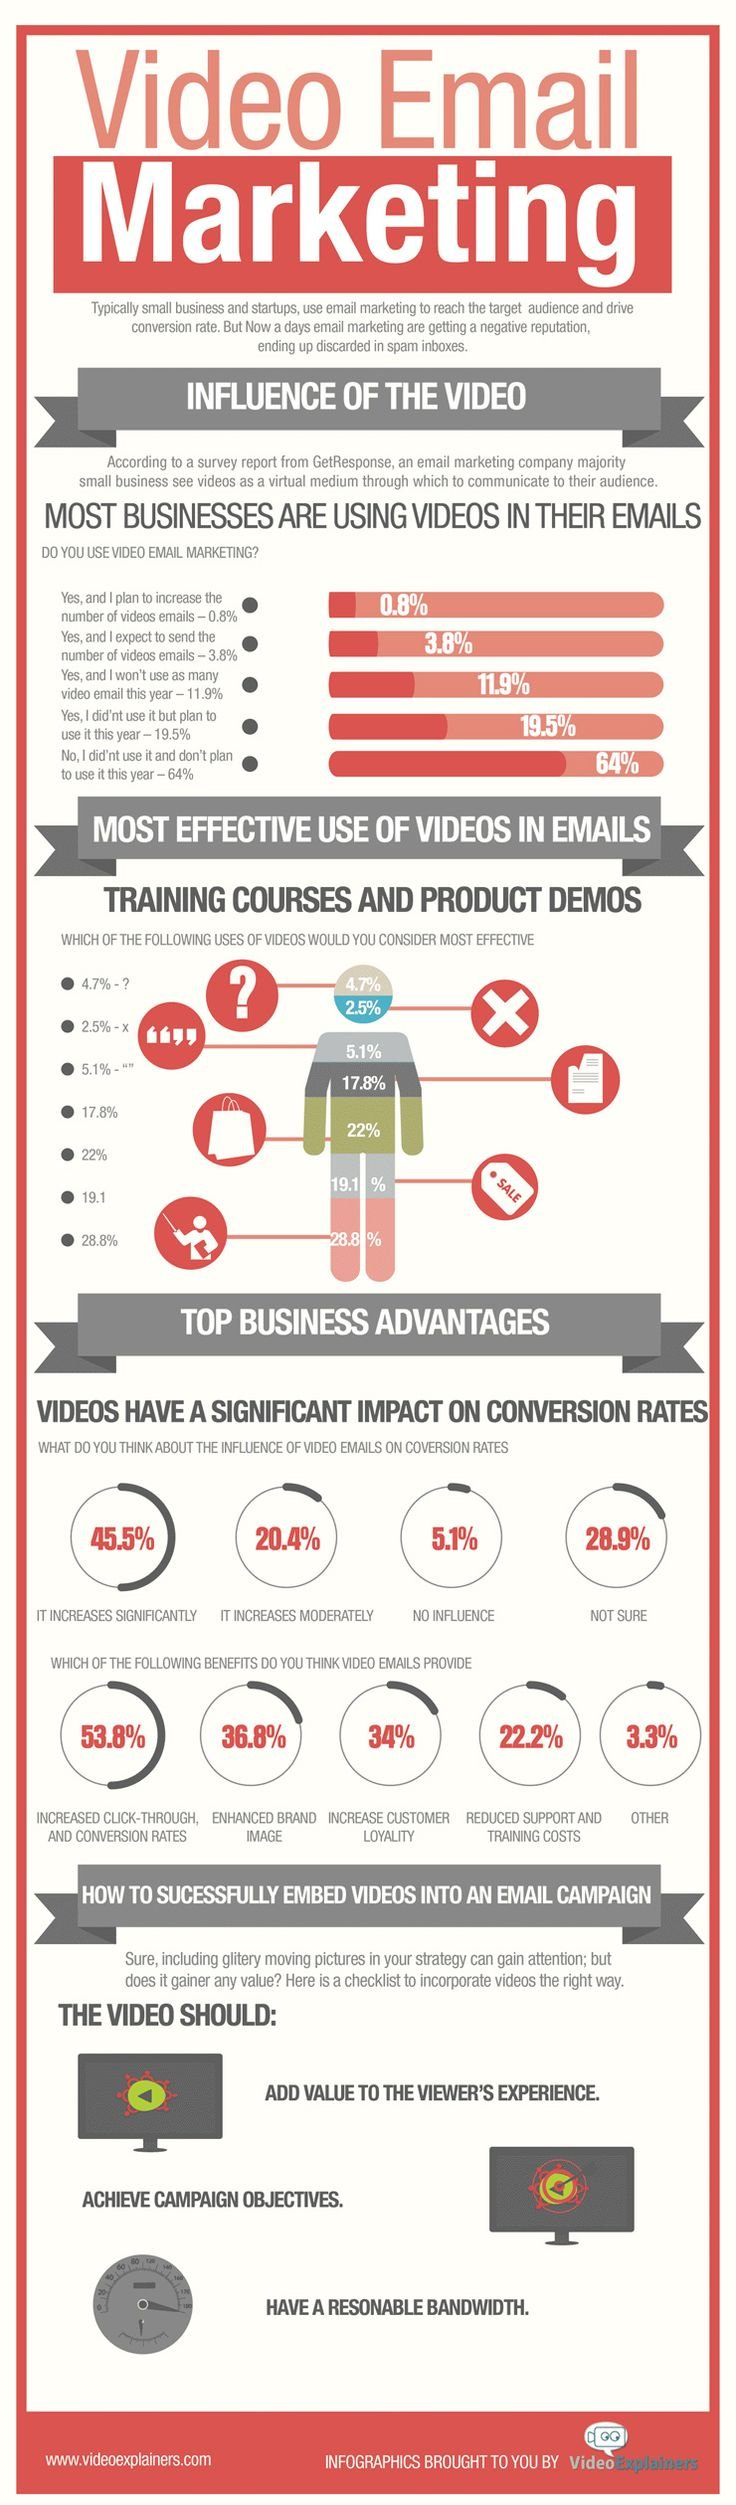 Video Email Marketing #infographic